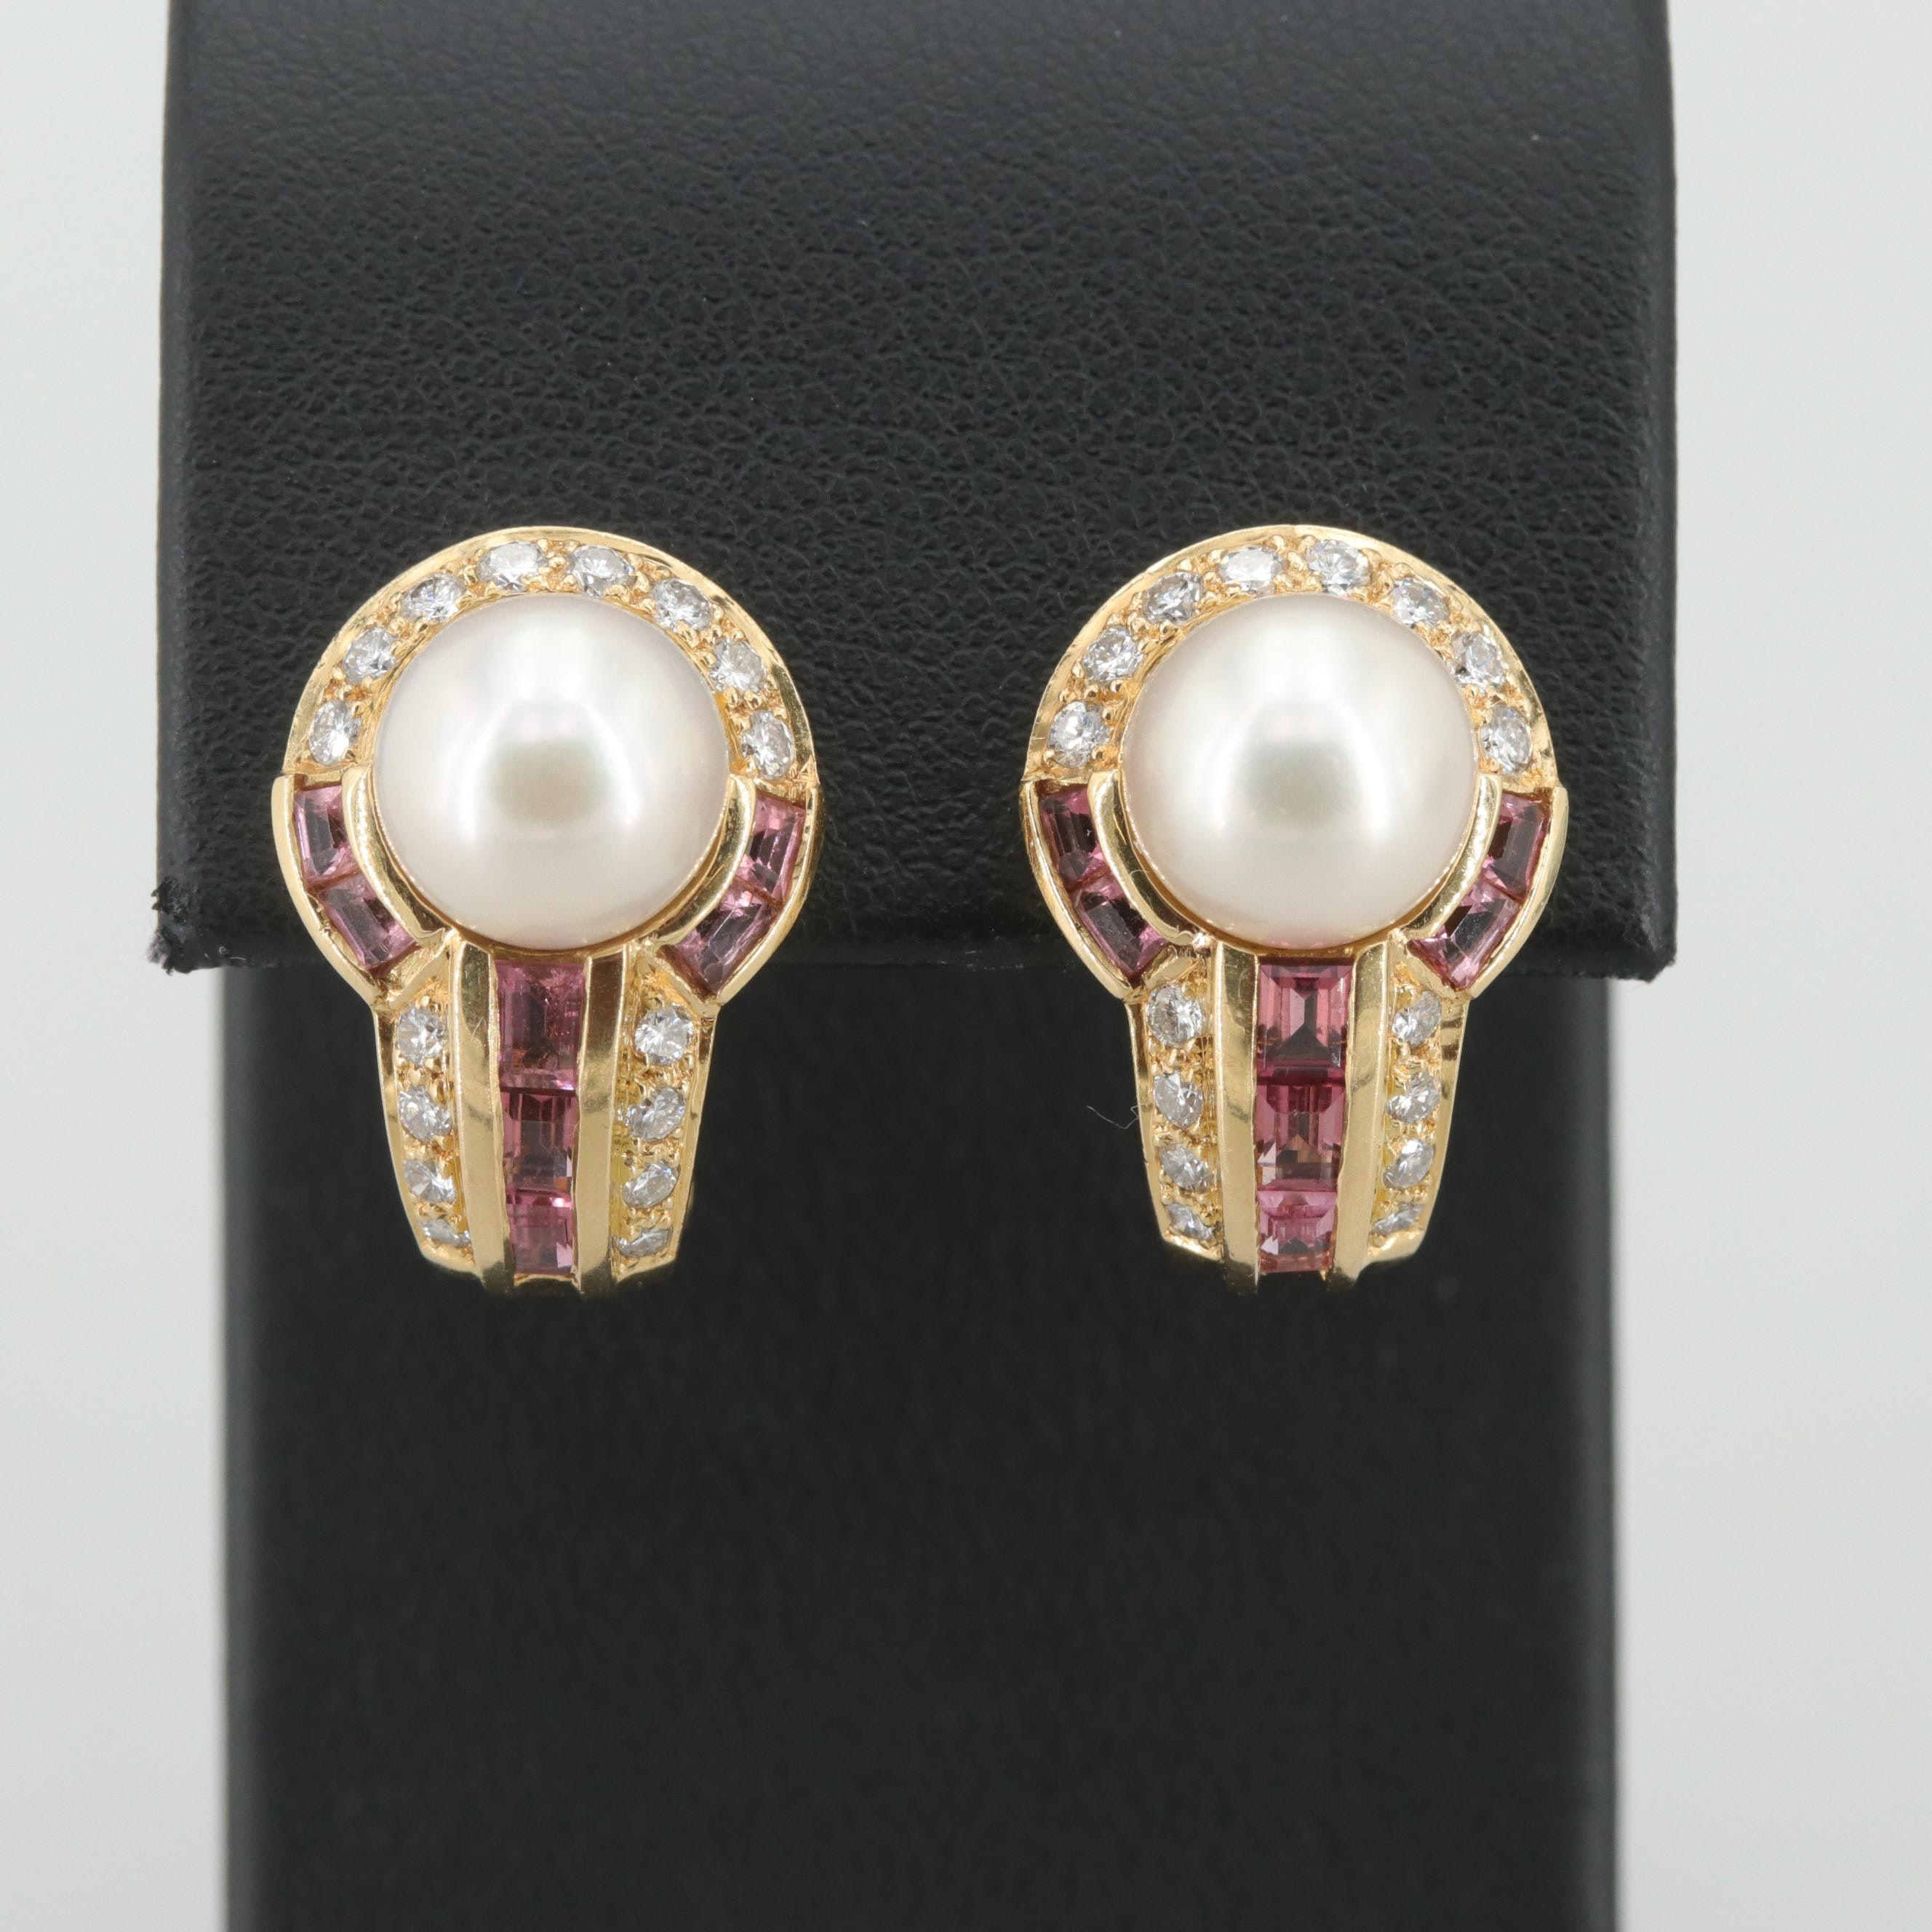 18K Yellow Gold Cultured Pearl, Pink Tourmaline and Diamond Drop Earrings